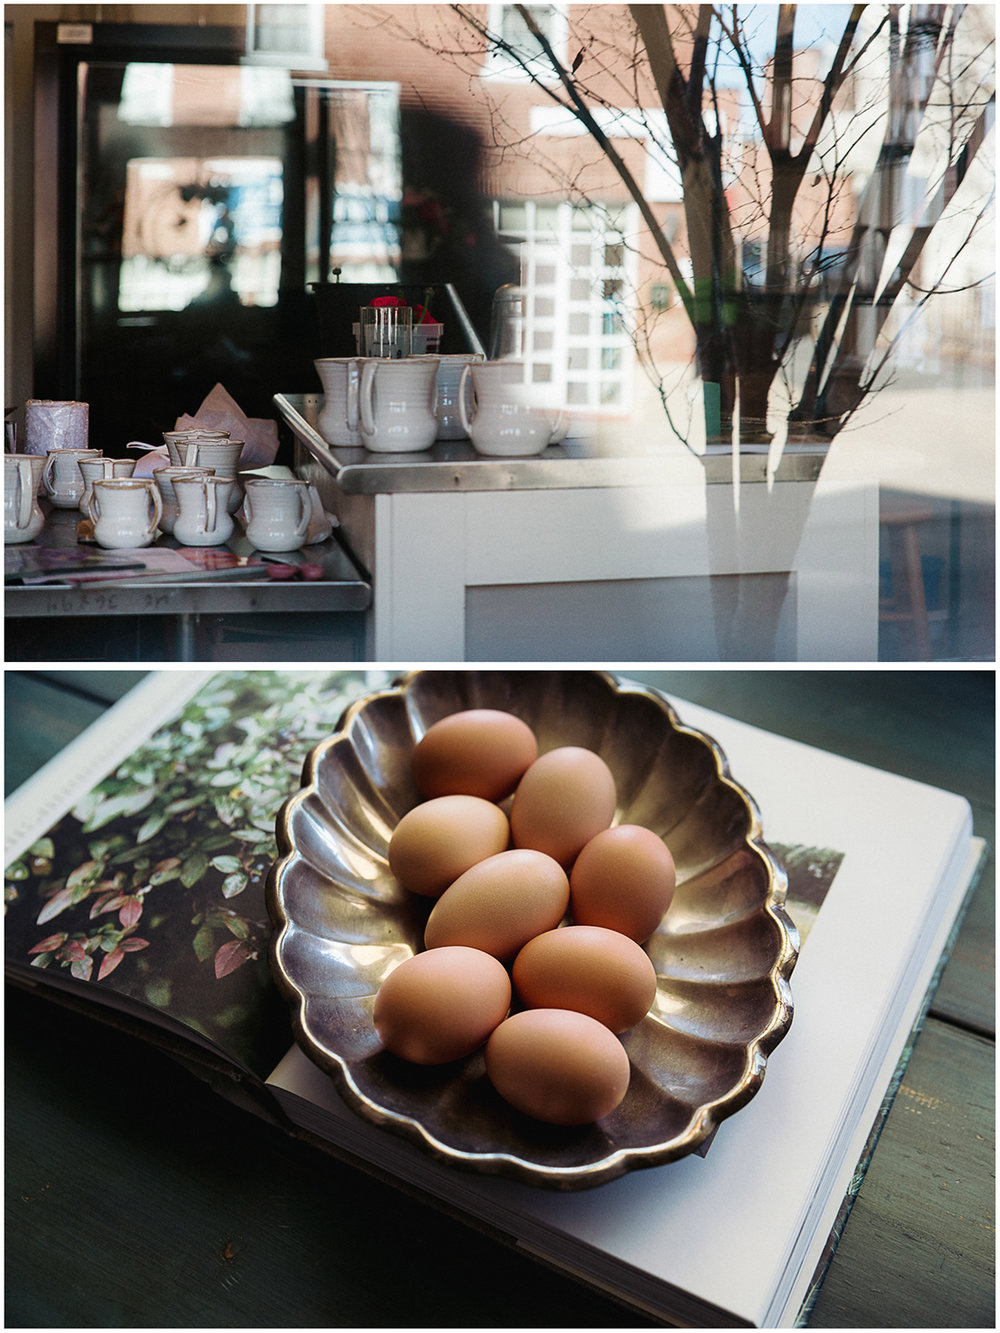 Eggs_SilverPlatter_WindowReflection_Ditych.jpg